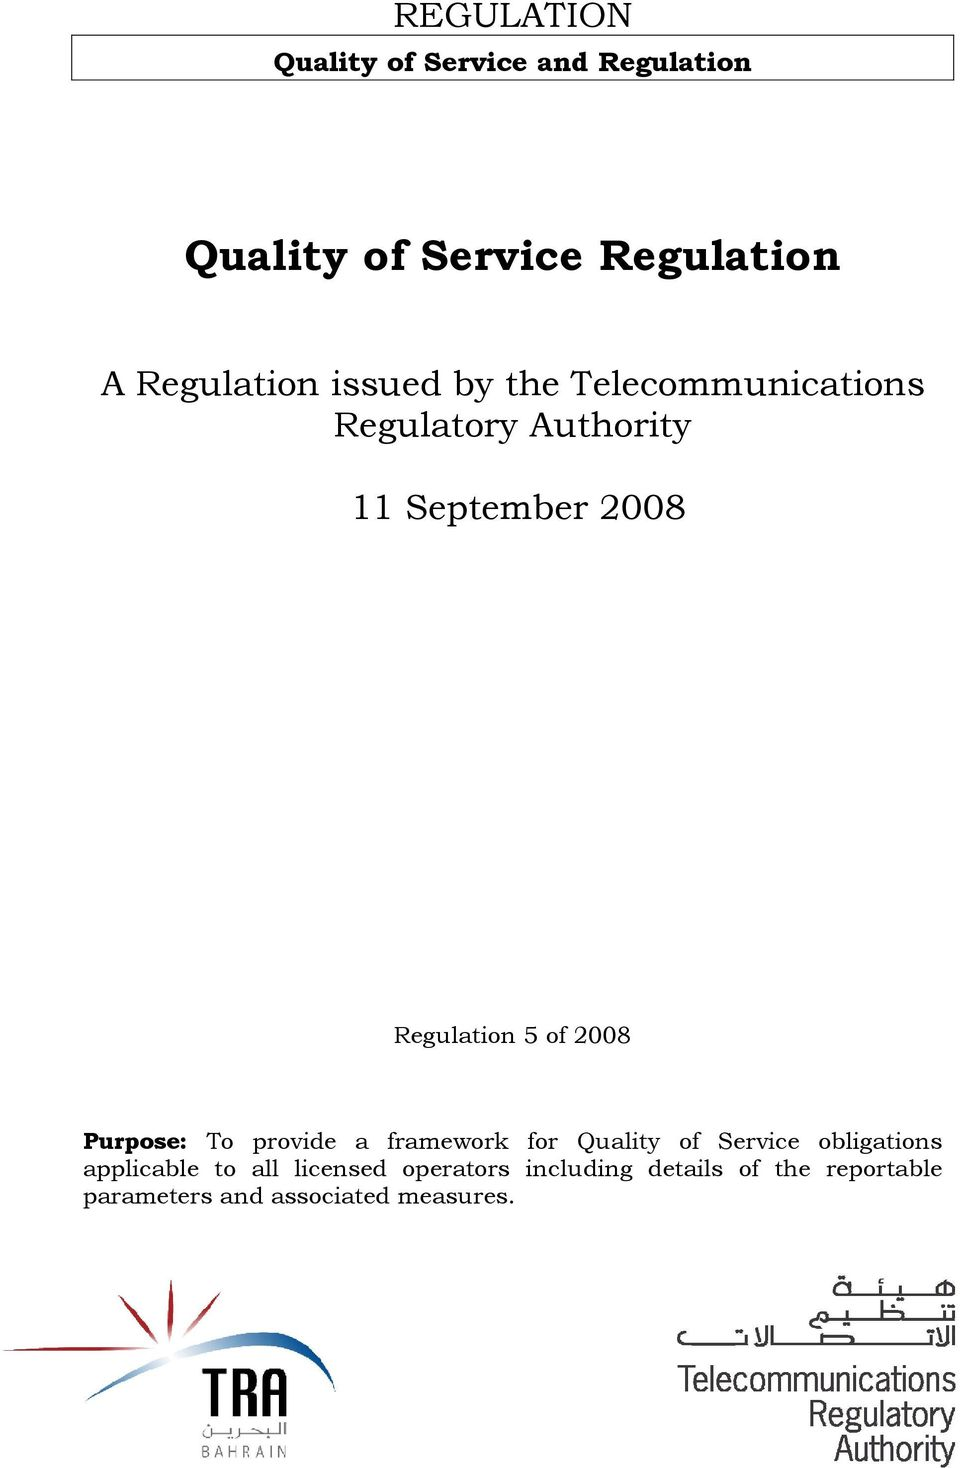 provide a framework for Quality of Service obligations applicable to all